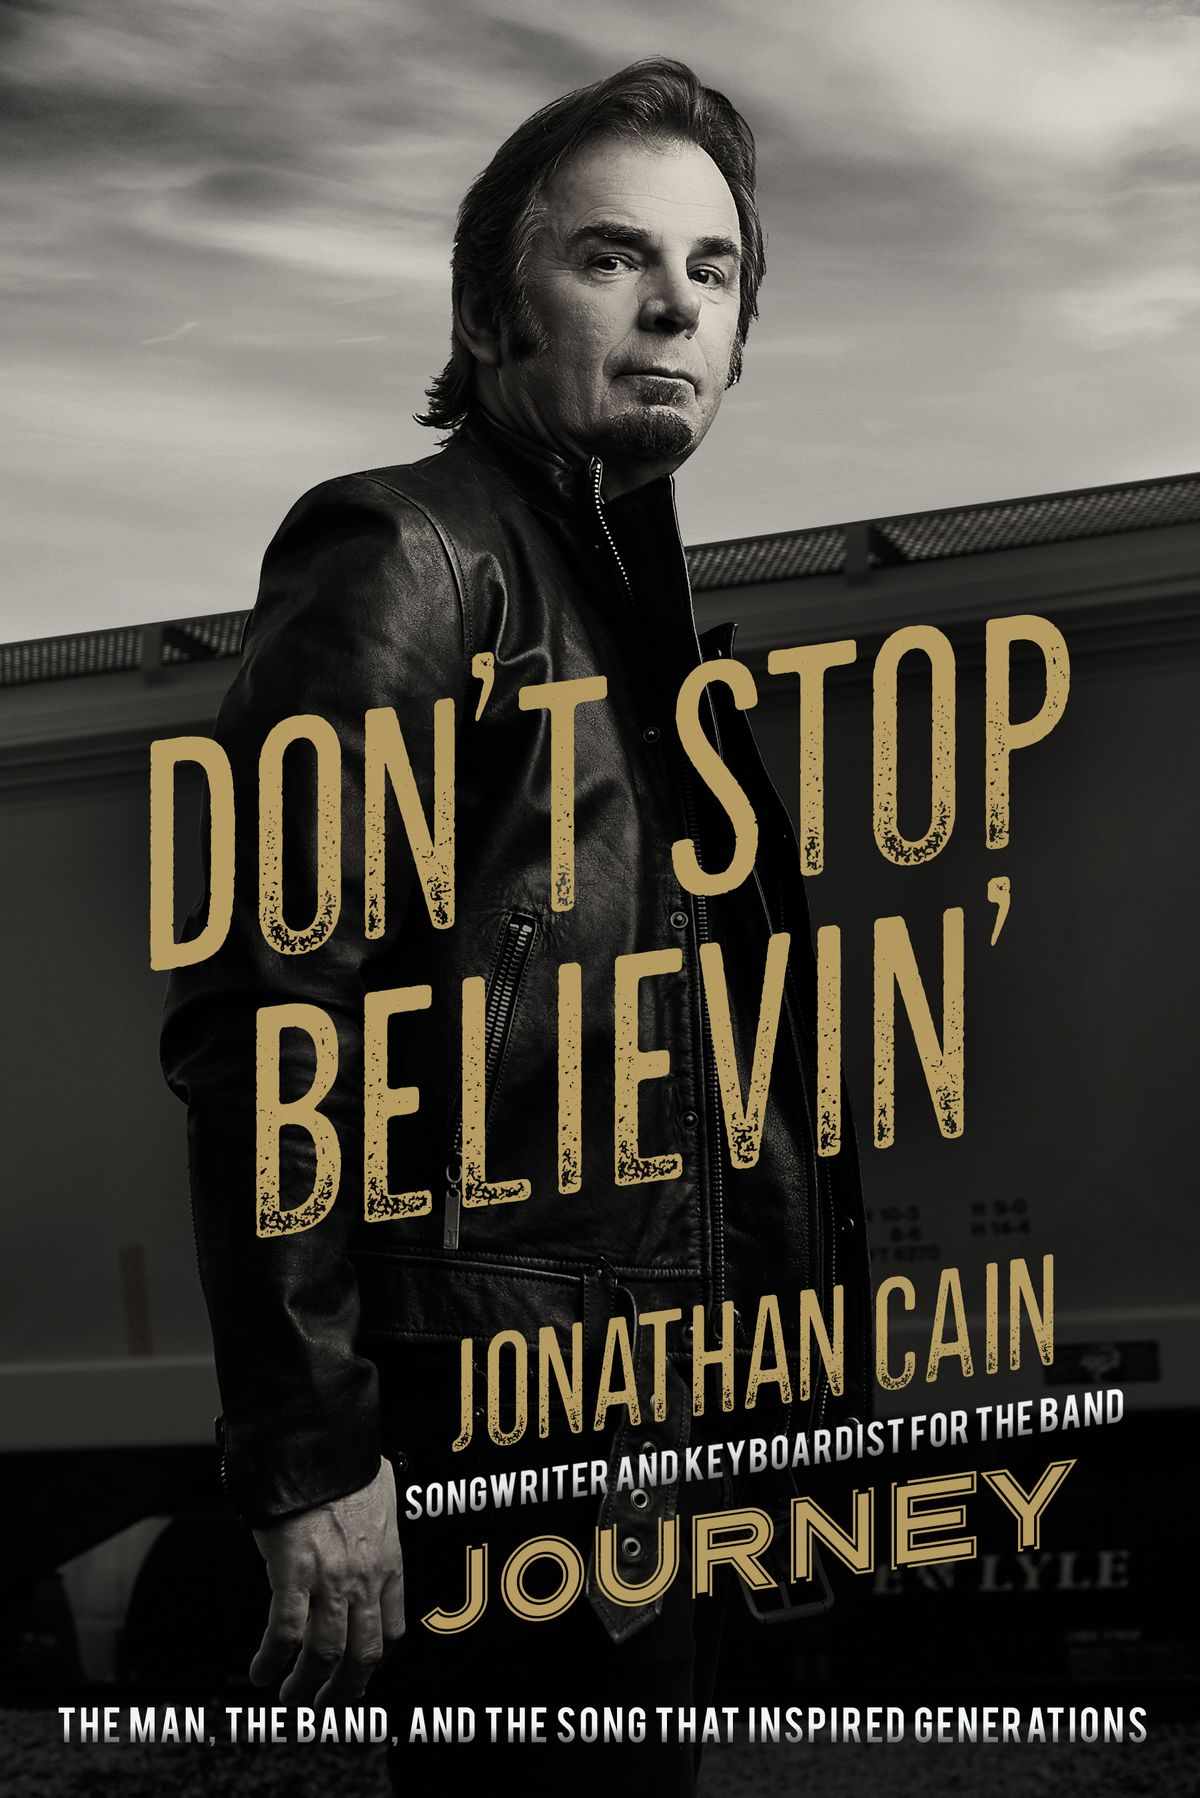 """The cover of """"Don't Stop Believin' """" by Journey keyboardist Jonathan Cain."""